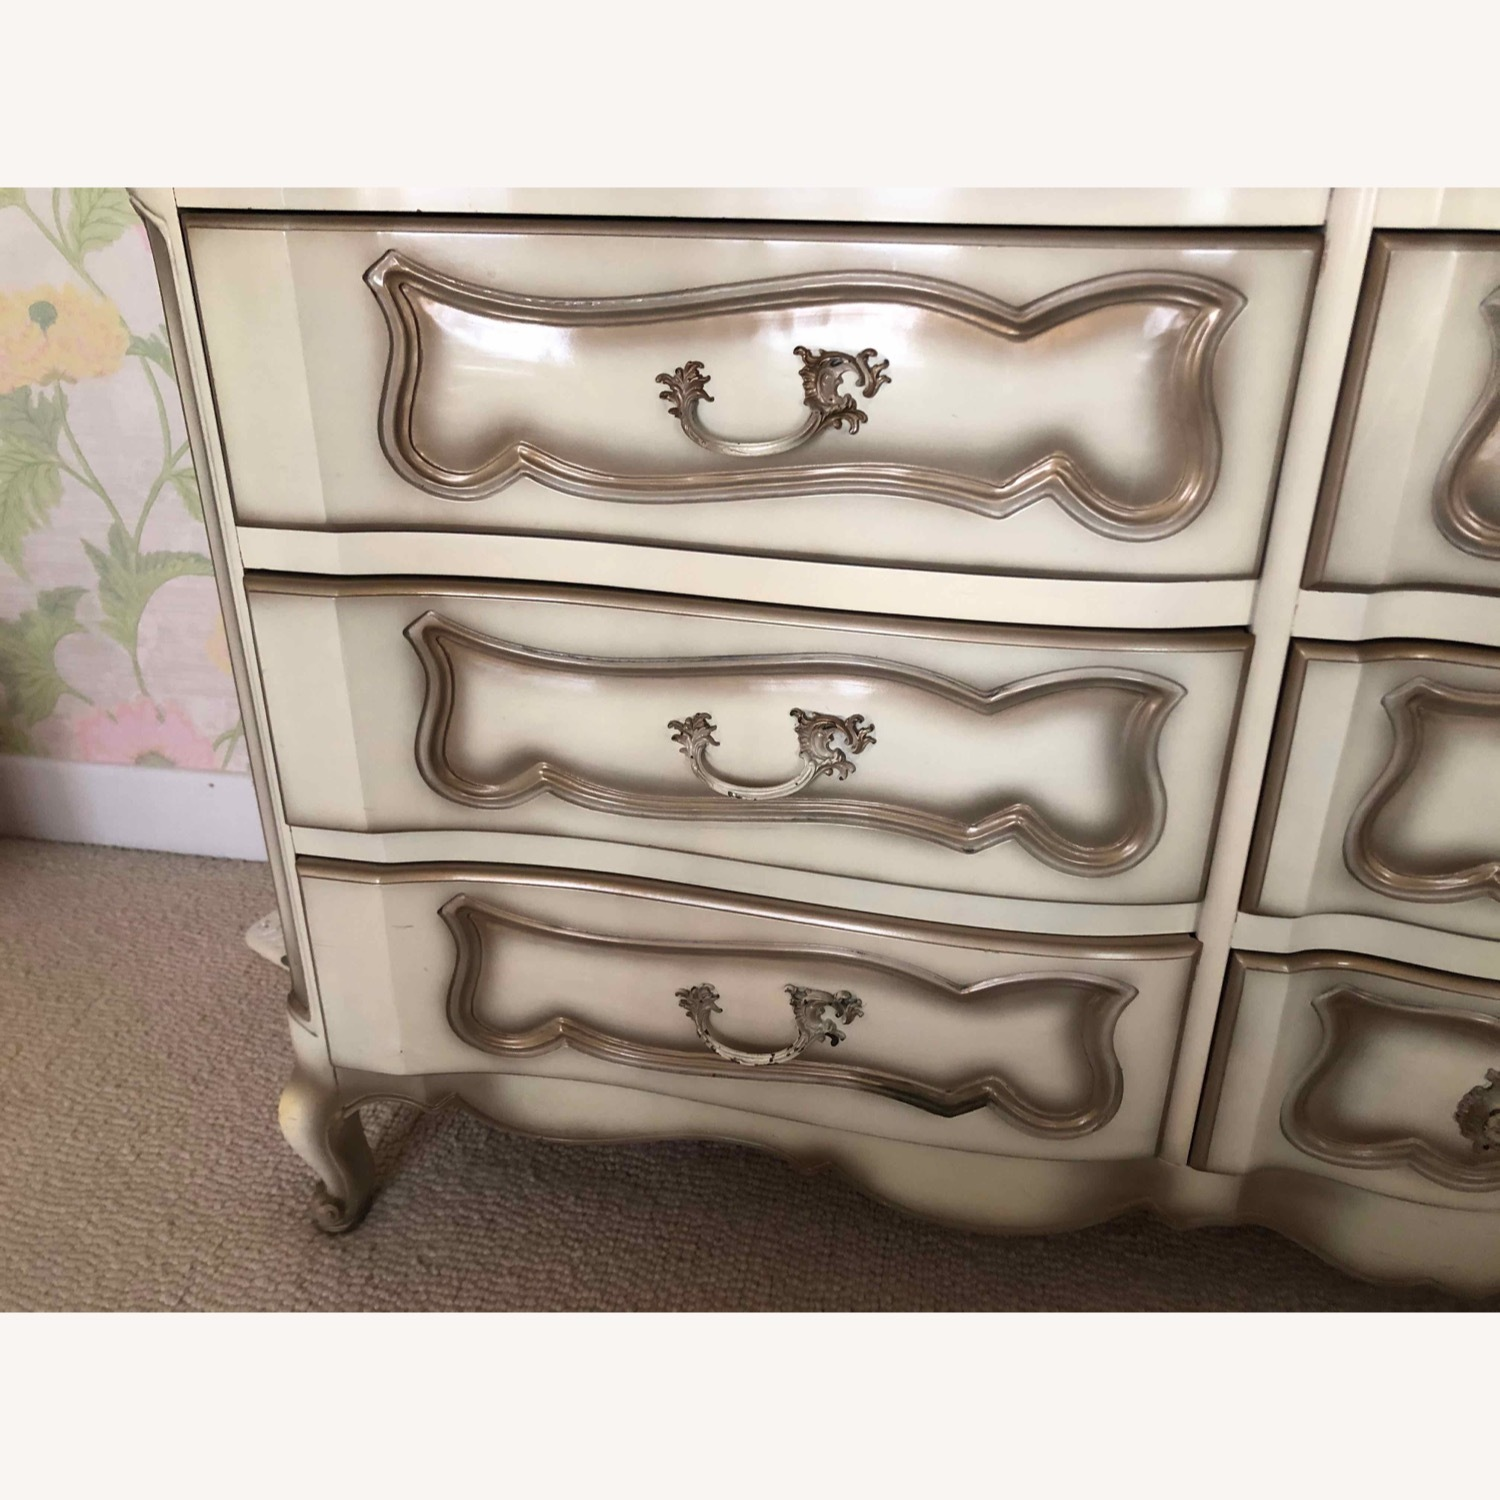 French Provincial Dresser and Matching Mirror - image-5